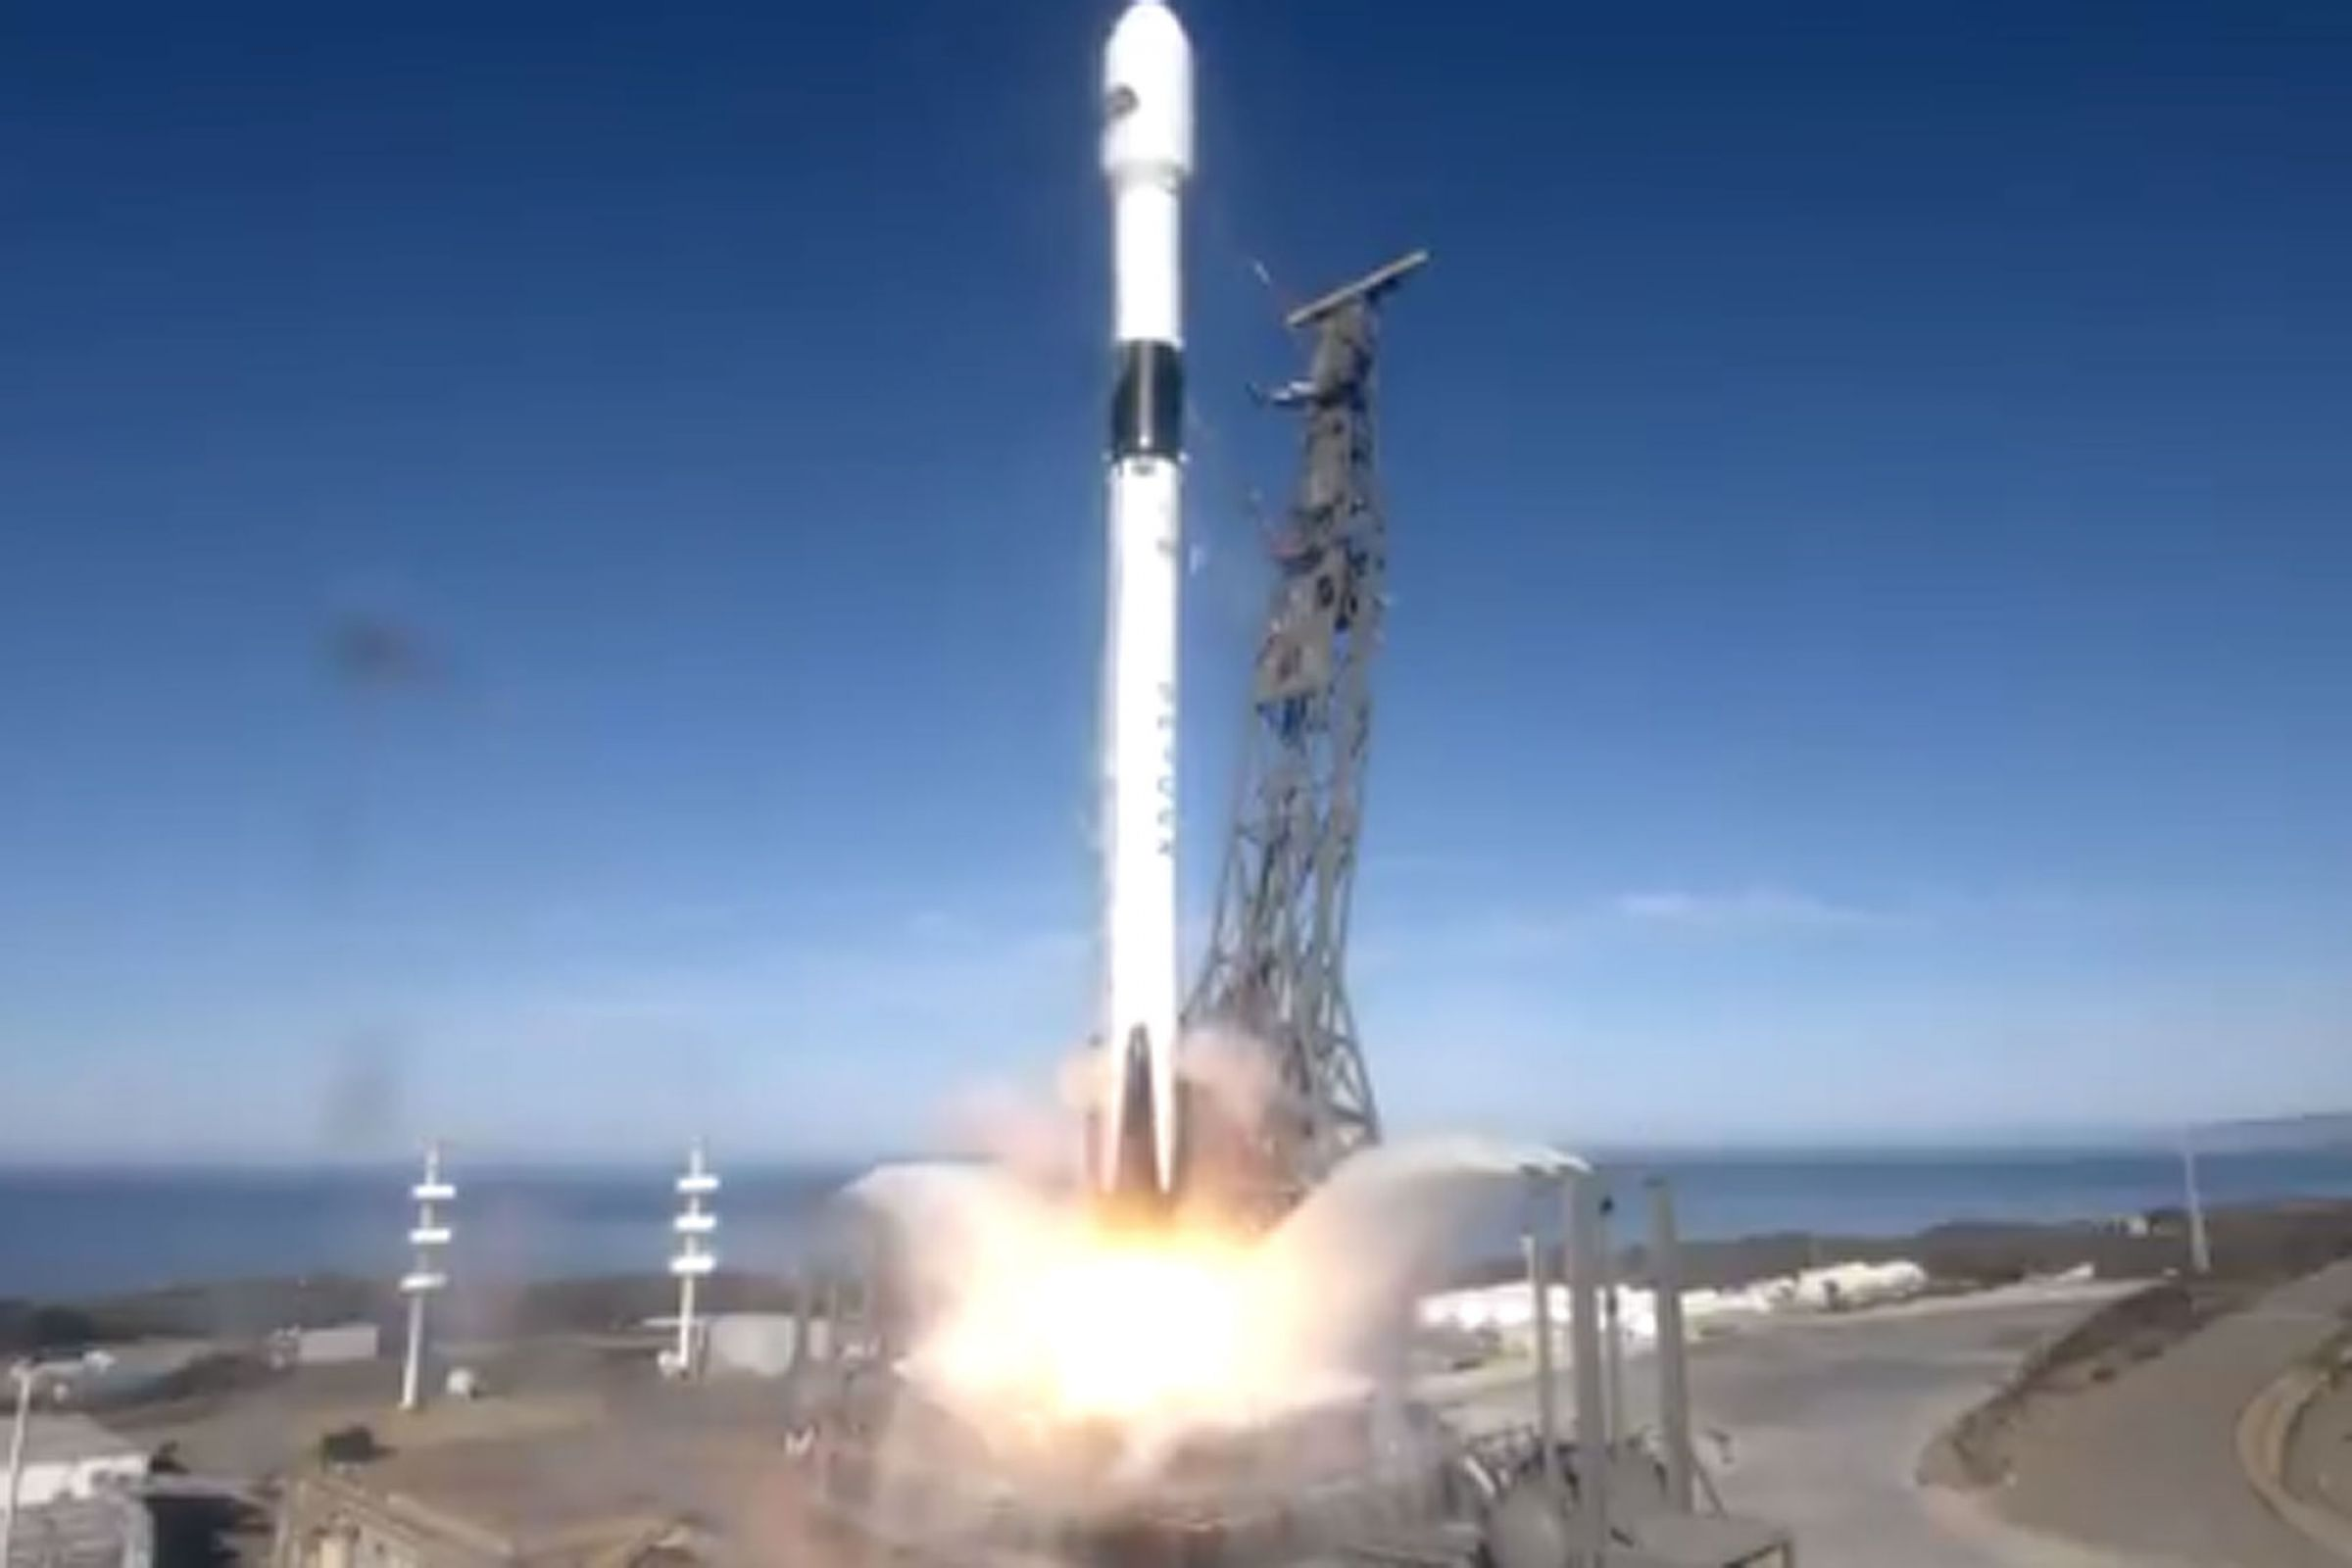 SpaceX rocket blasts UK-backed 'sea cartographer' satellite into orbit